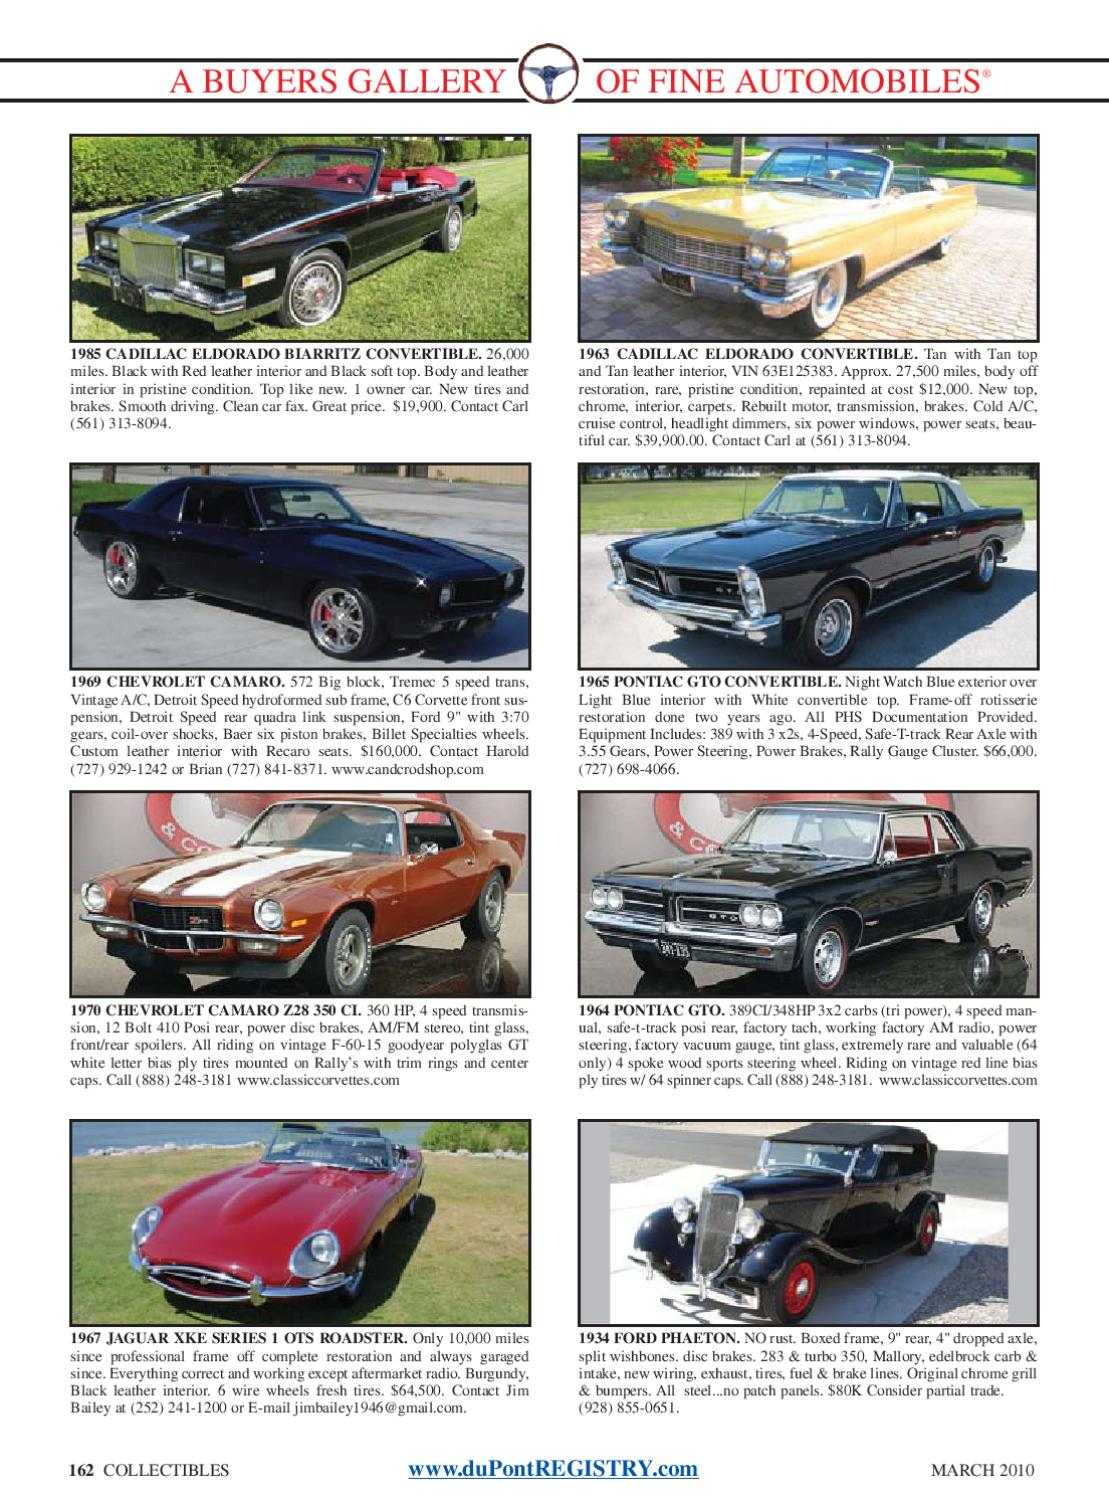 duPontREGISTRY Autos March 2010 by duPont REGISTRY - issuu